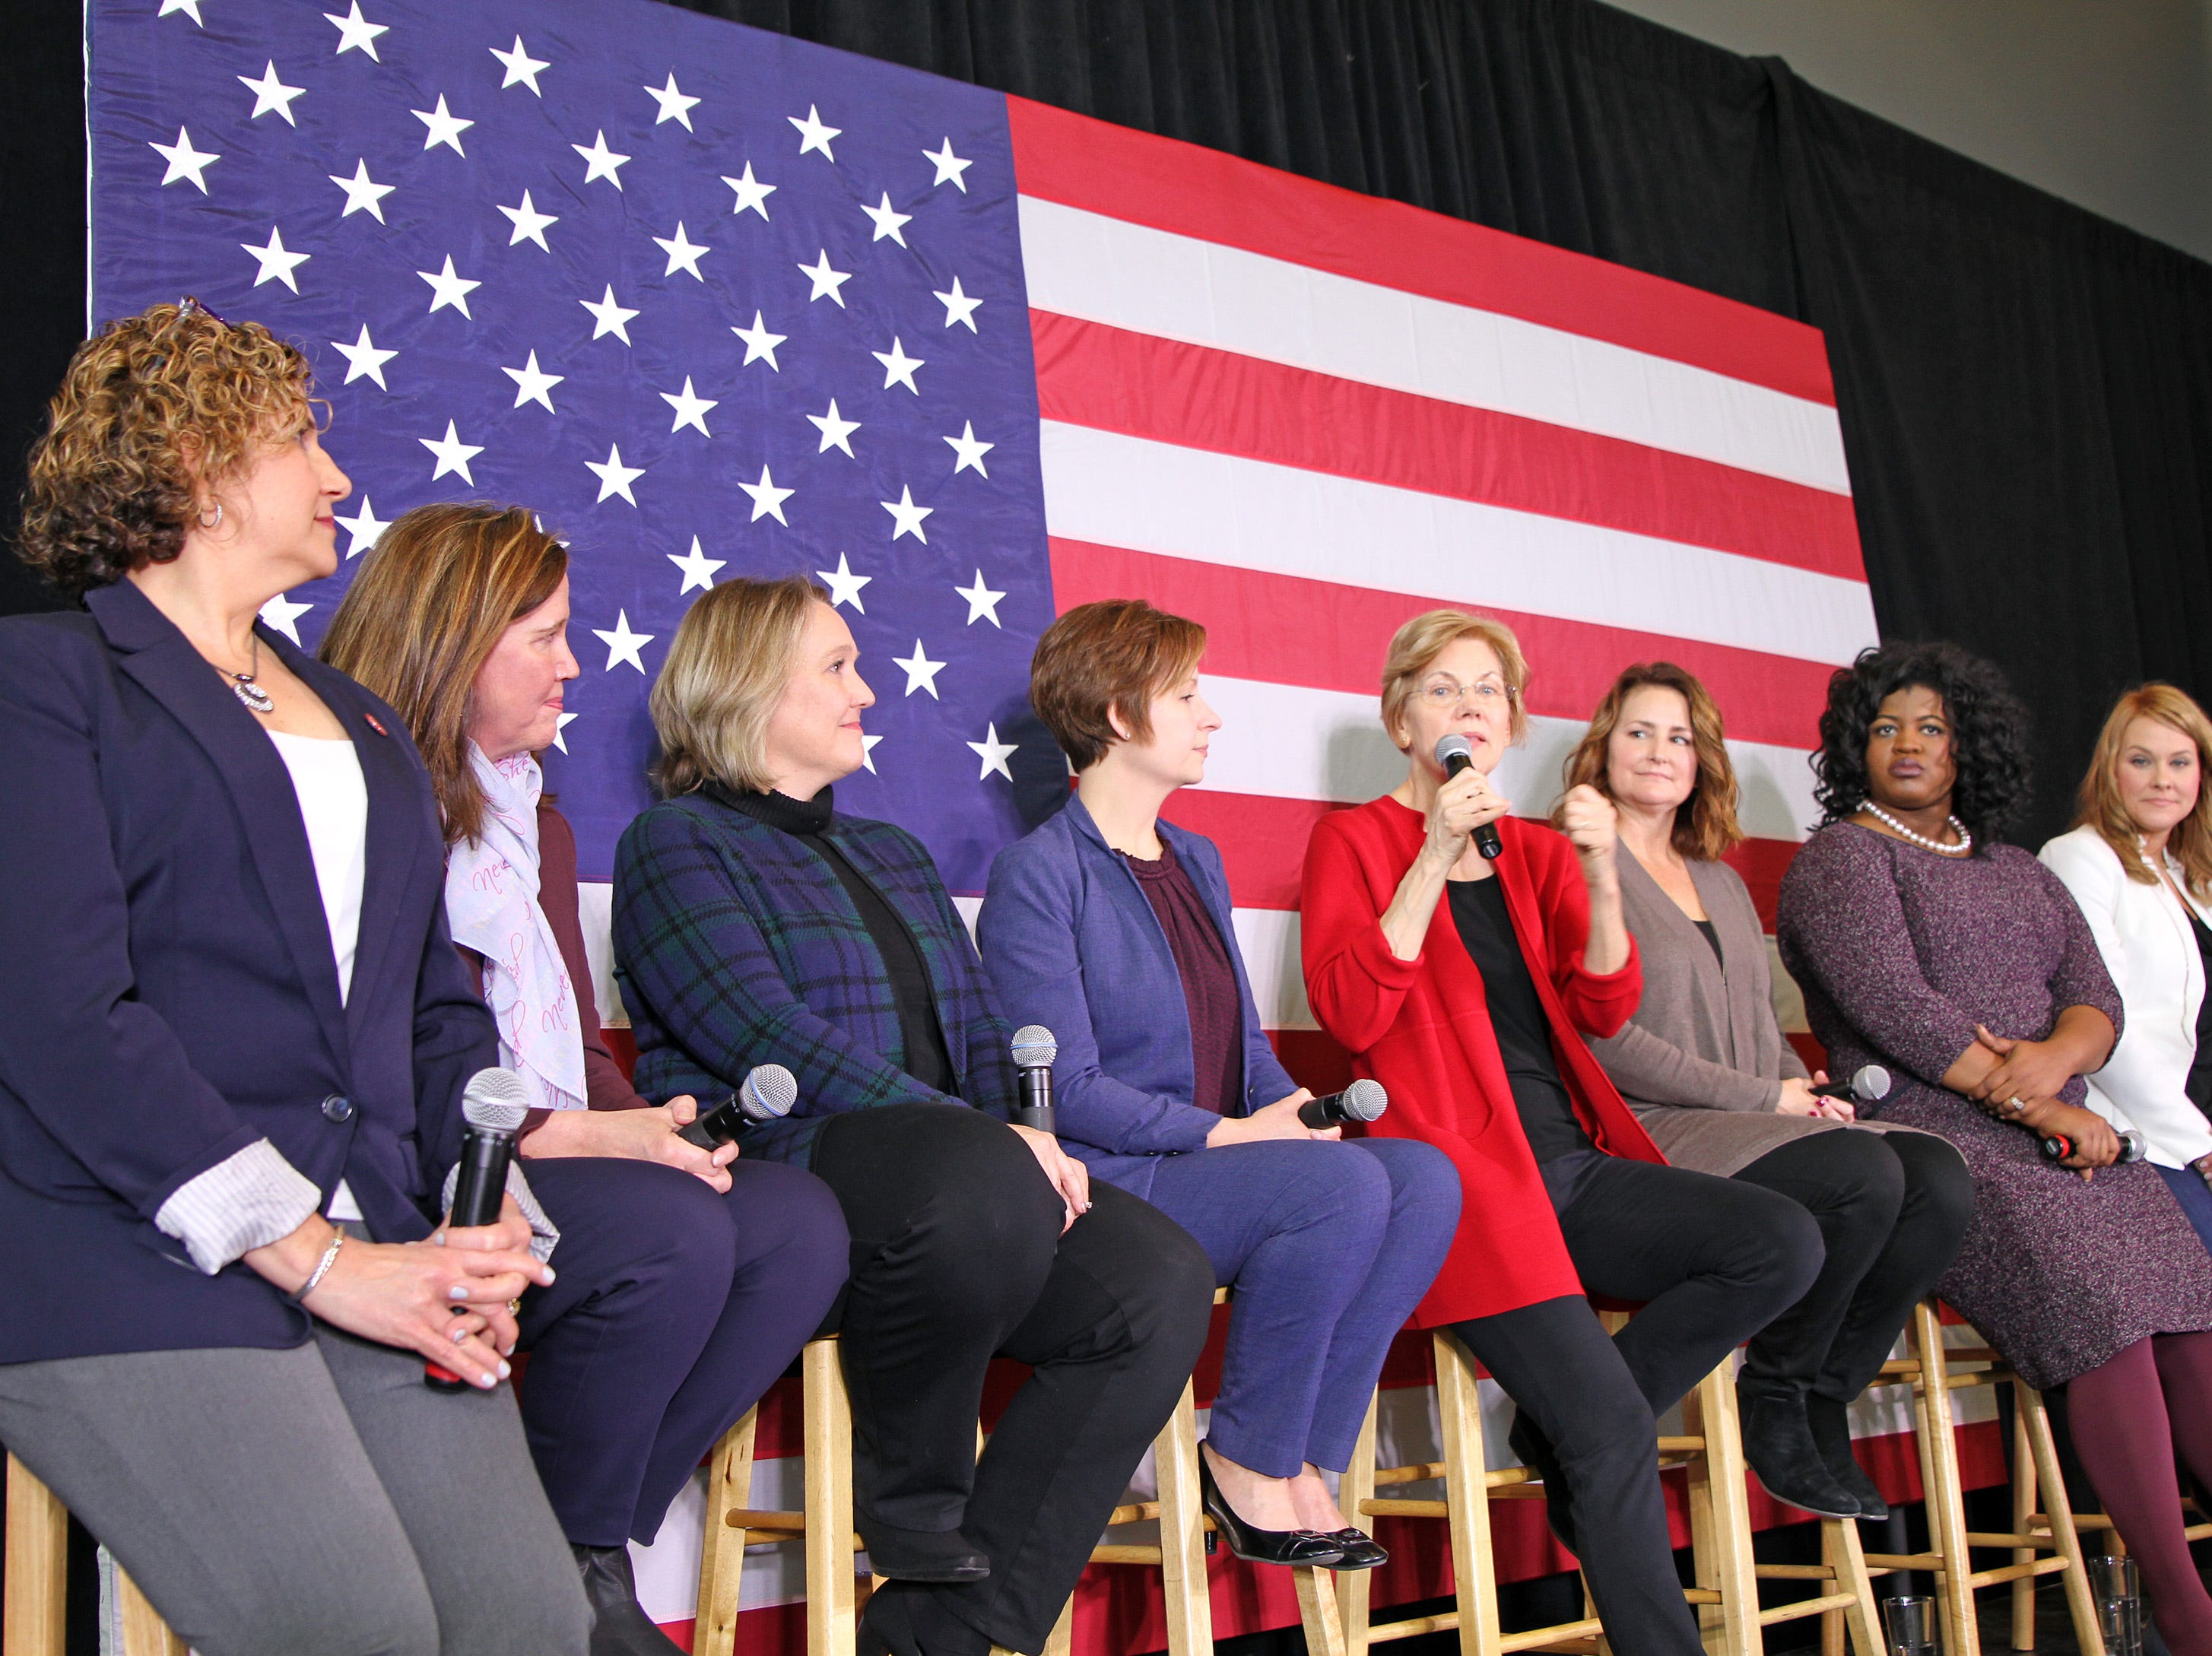 Possible presidential candidate U.S. Sen. Elizabeth Warren of Massachusetts visits Iowa and makes a stop for a conversation with women leaders at The District Venue at 1350 SW Vintage Parkway on Sunday, Jan. 6, 2019, in Ankeny.